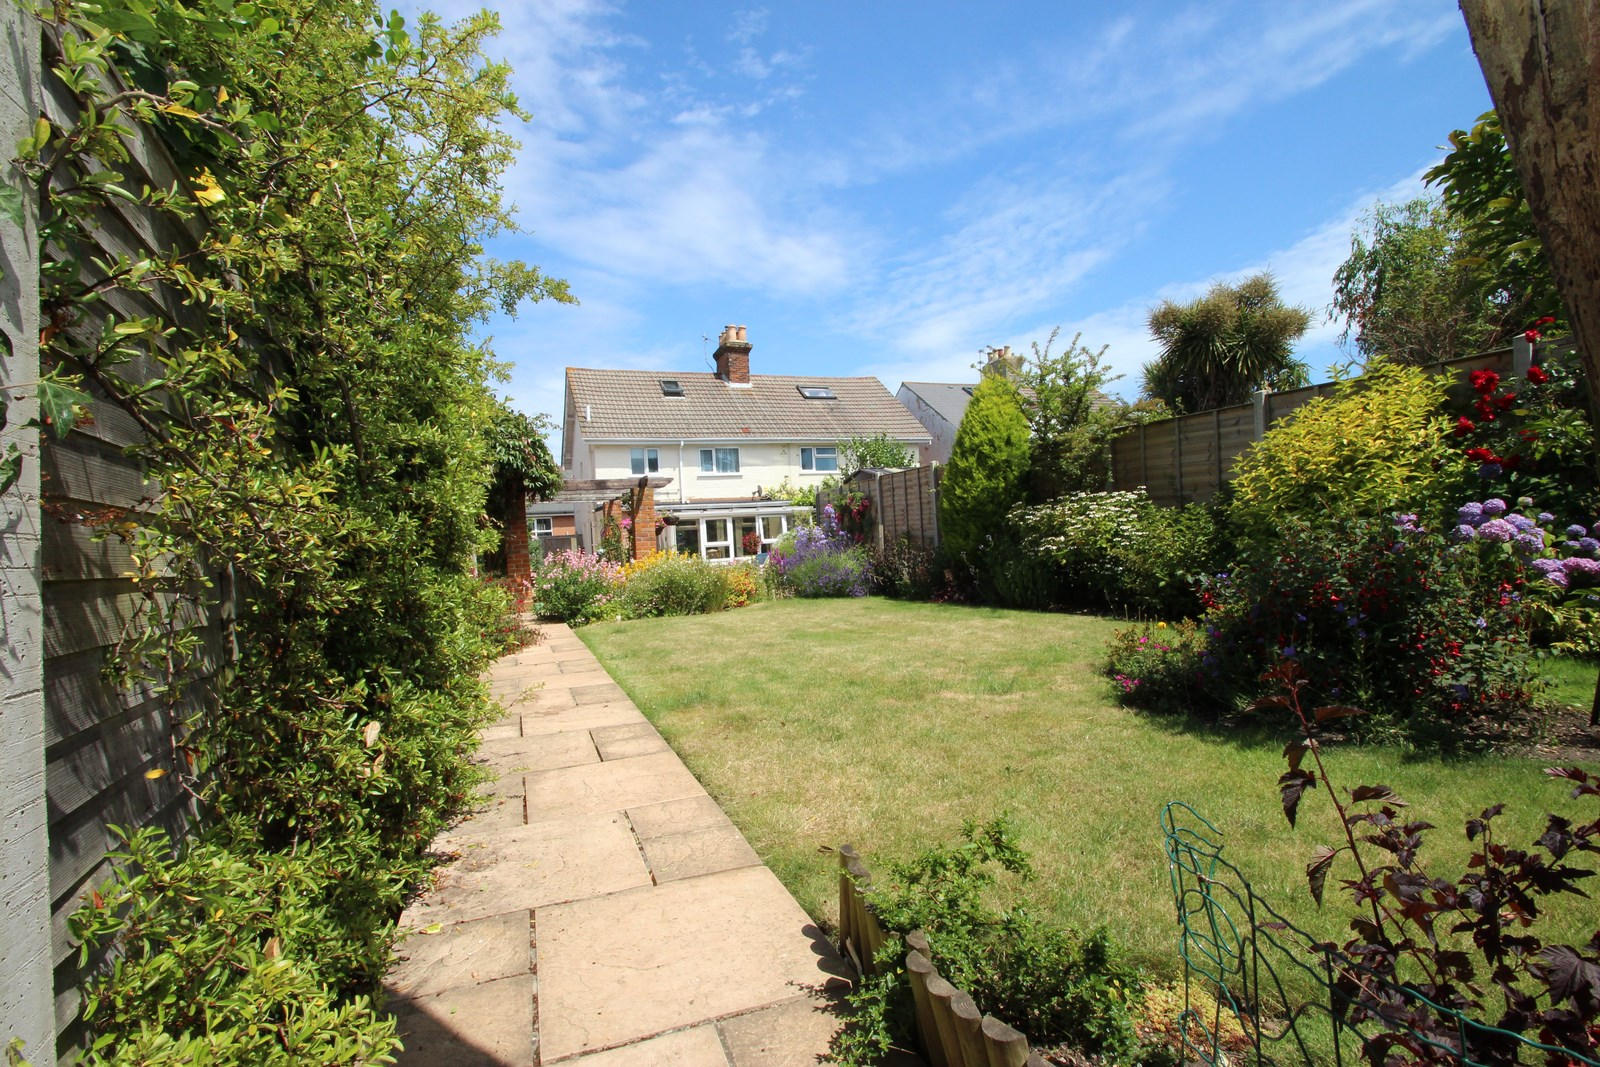 2 Bedroom House in Southbourne